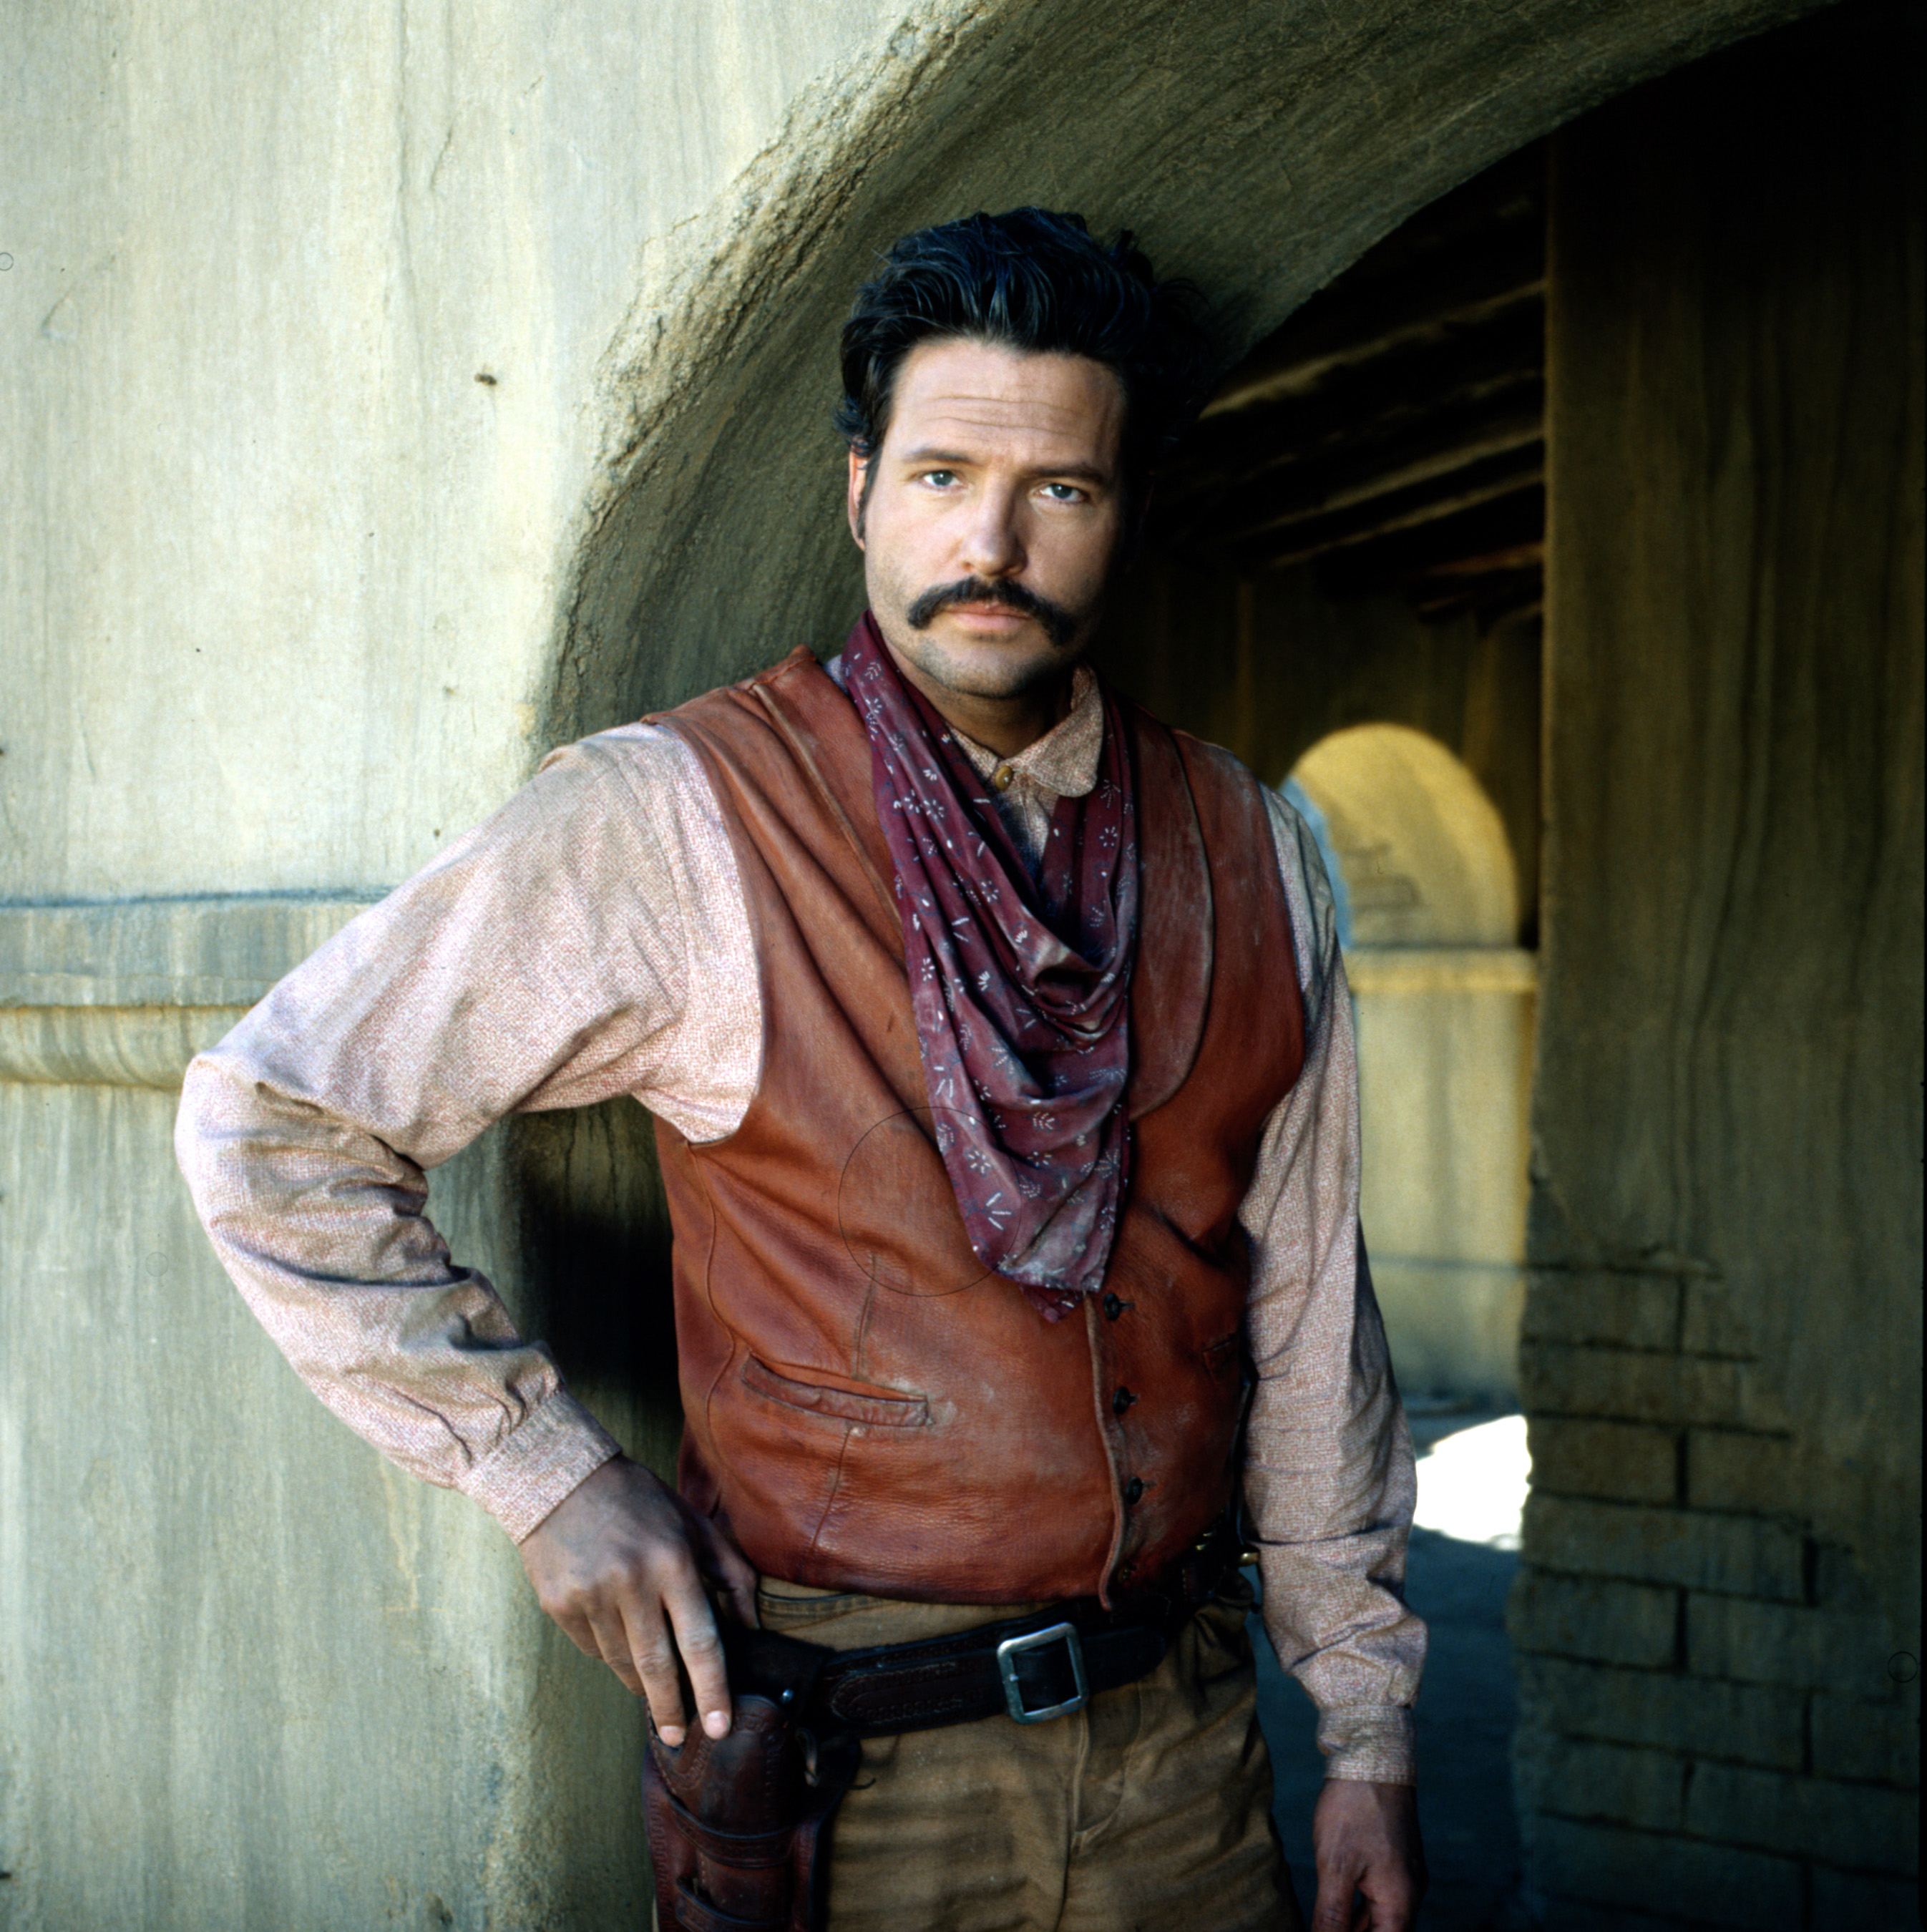 Dale MIdkiff as Magnificent 7's Buck Wilmington